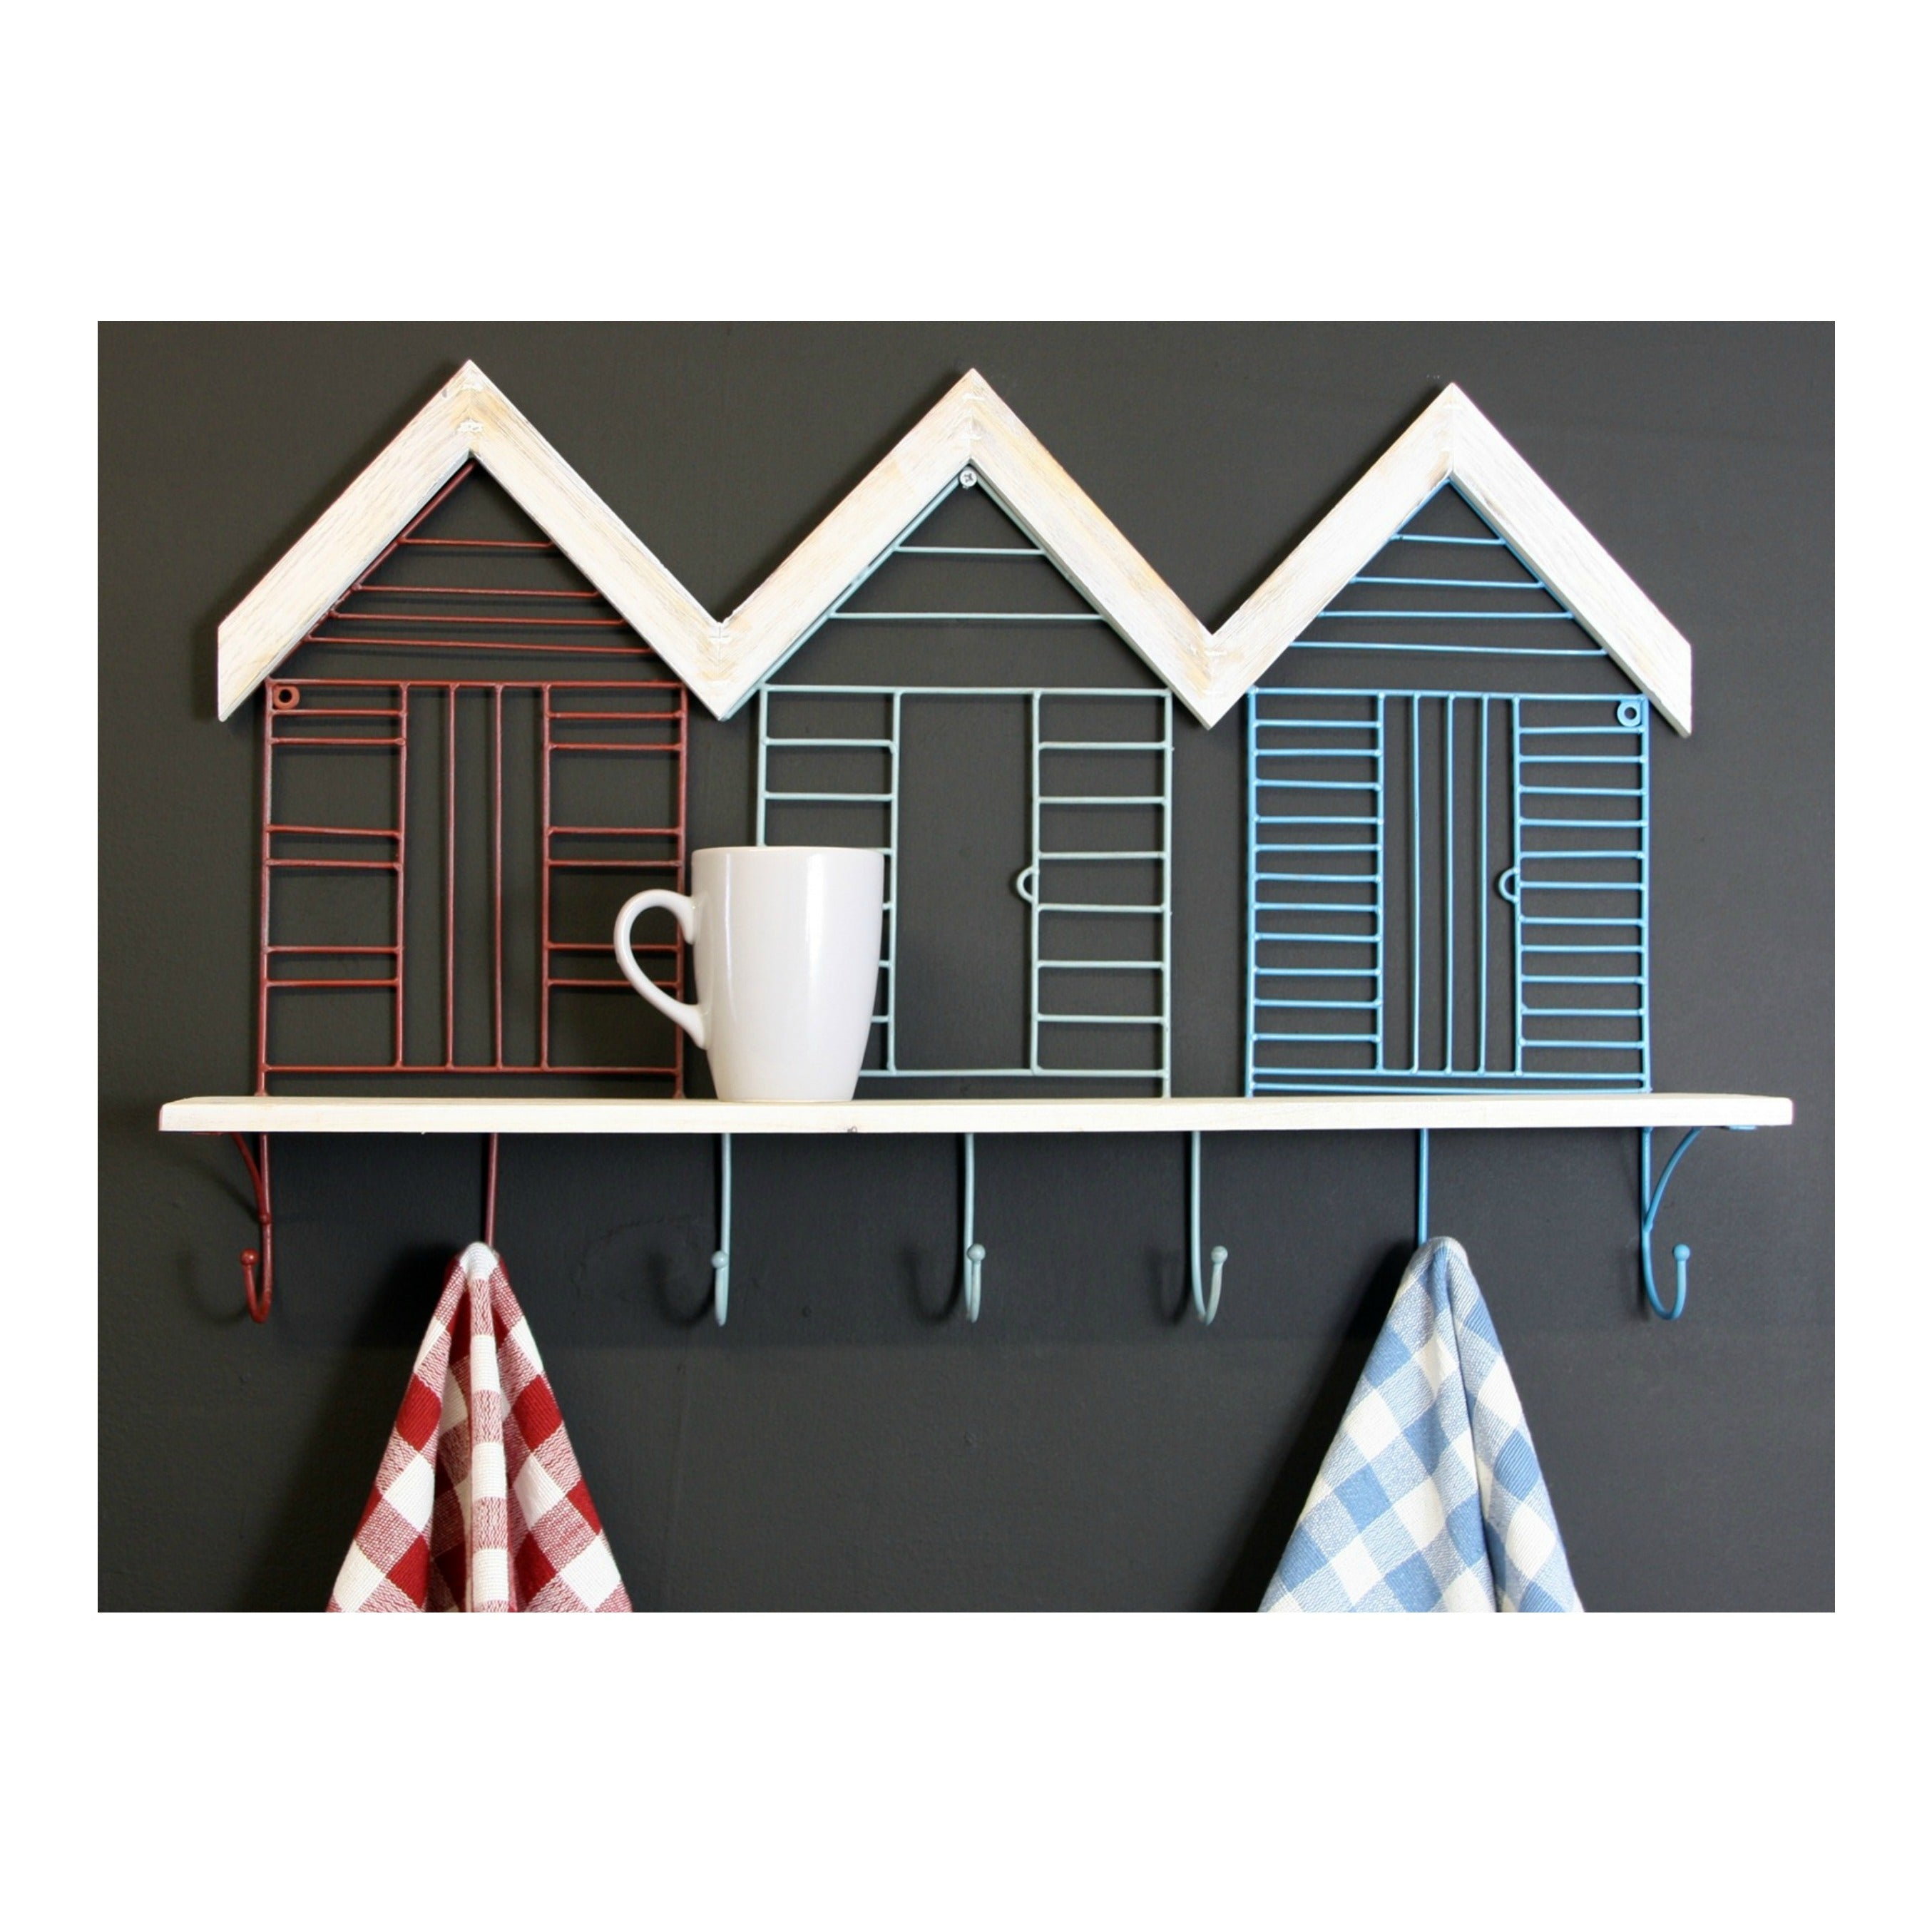 Set Of 7 Beach Hut Wall Hooks With Shelf, Clasps & Hooks by Low Cost Gifts